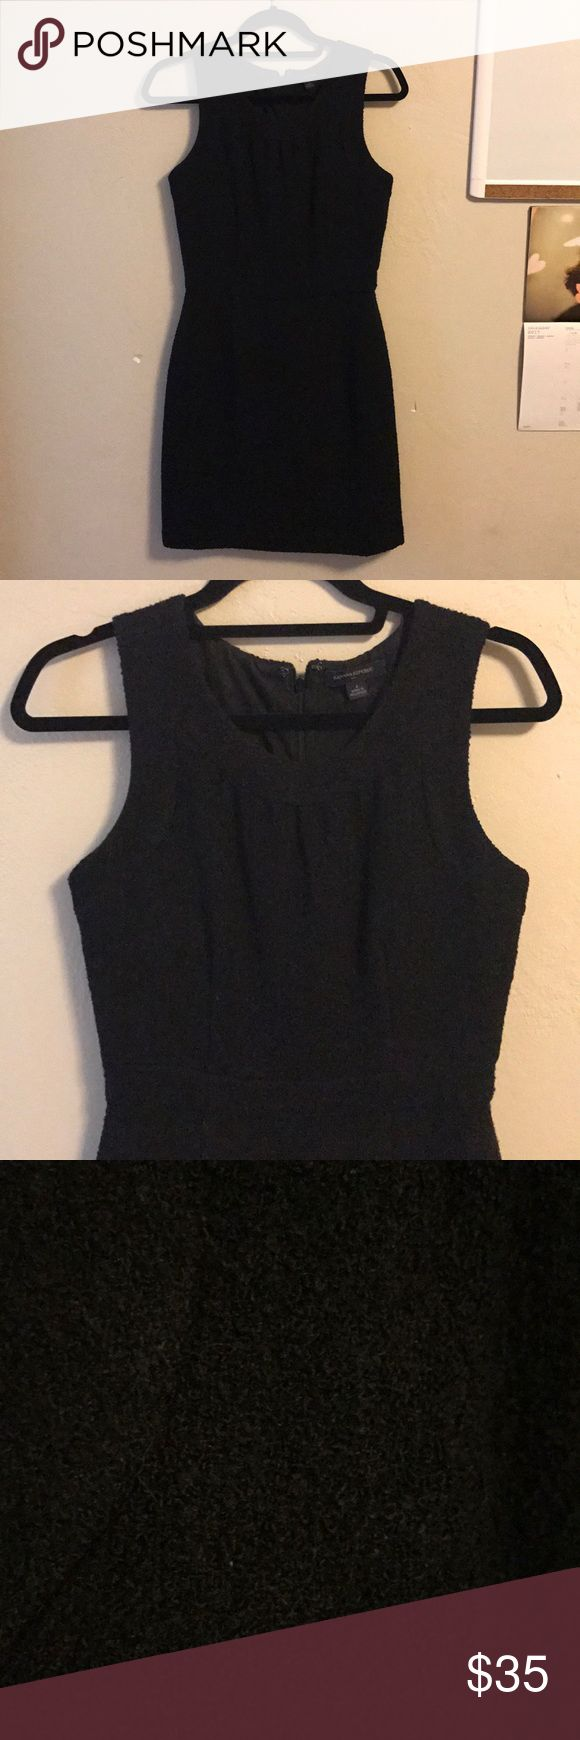 Banana Republic black cocktail or work dress Texture on shell- 40% wool & 46% rayon -thicker material so it's a purchase that will last -great black dress, fancy enough for a cocktail dress and simple enough to be a work dress Banana Republic Dresses Mini